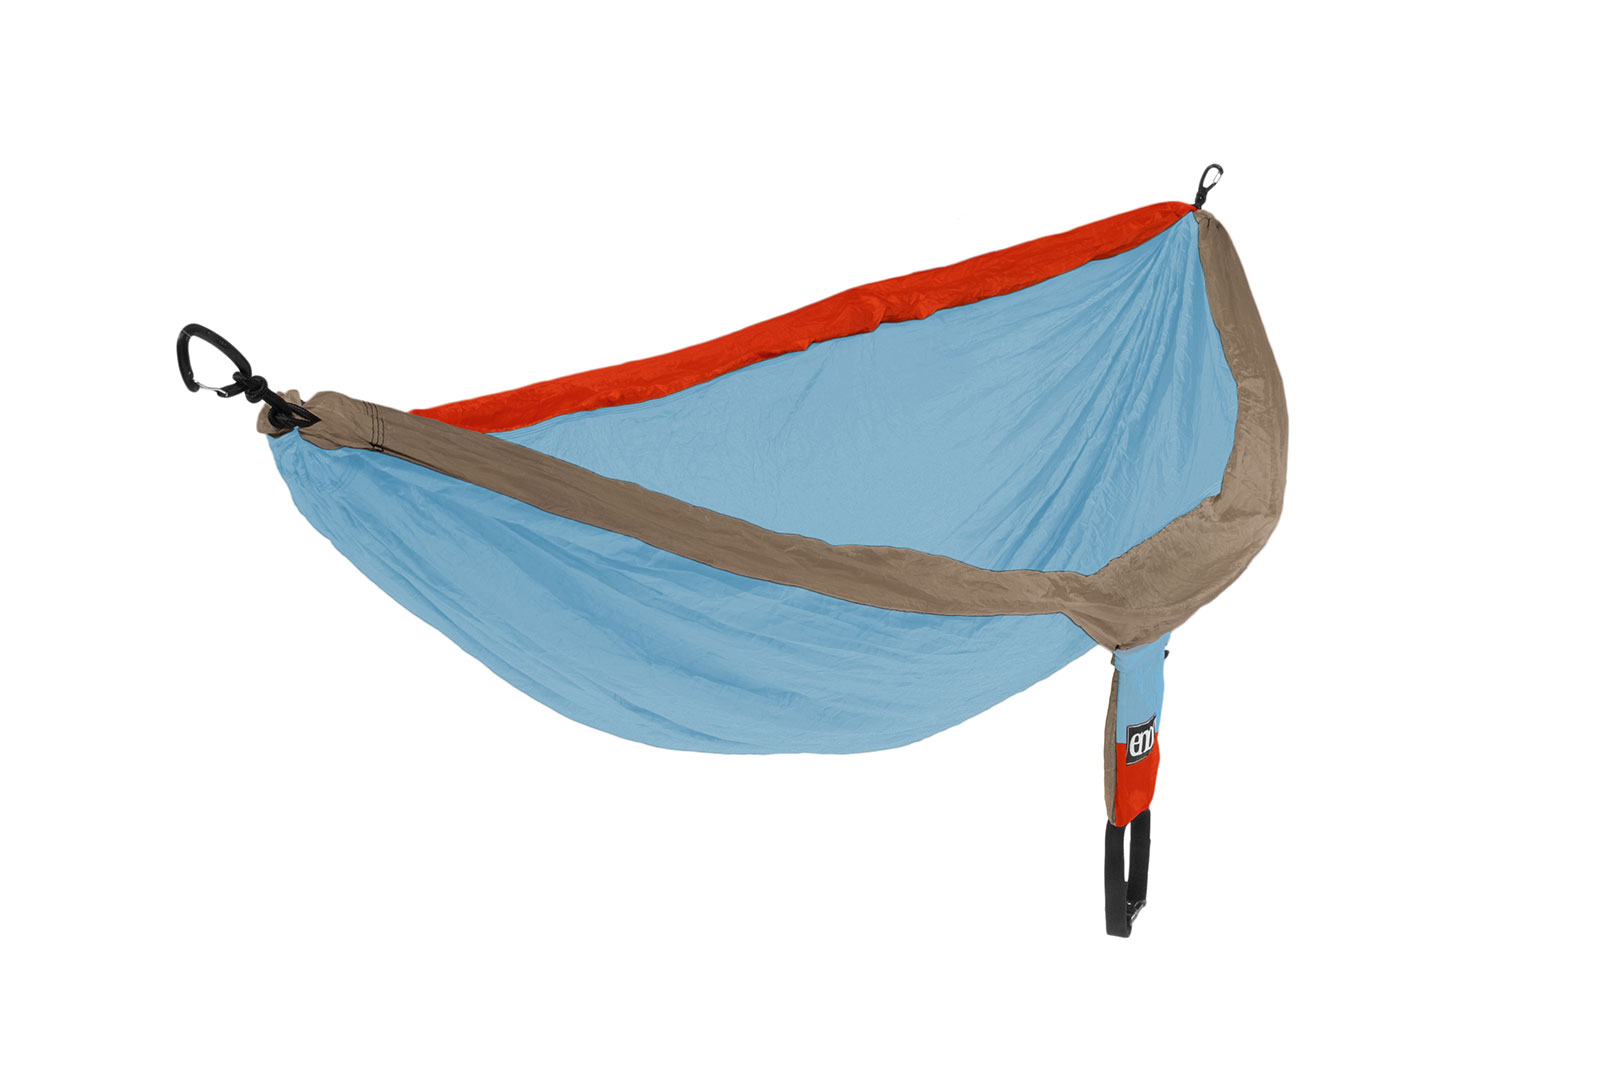 ... Outdoor Sports > Camping & Hiking > Outdoor Sleeping Gear > ...